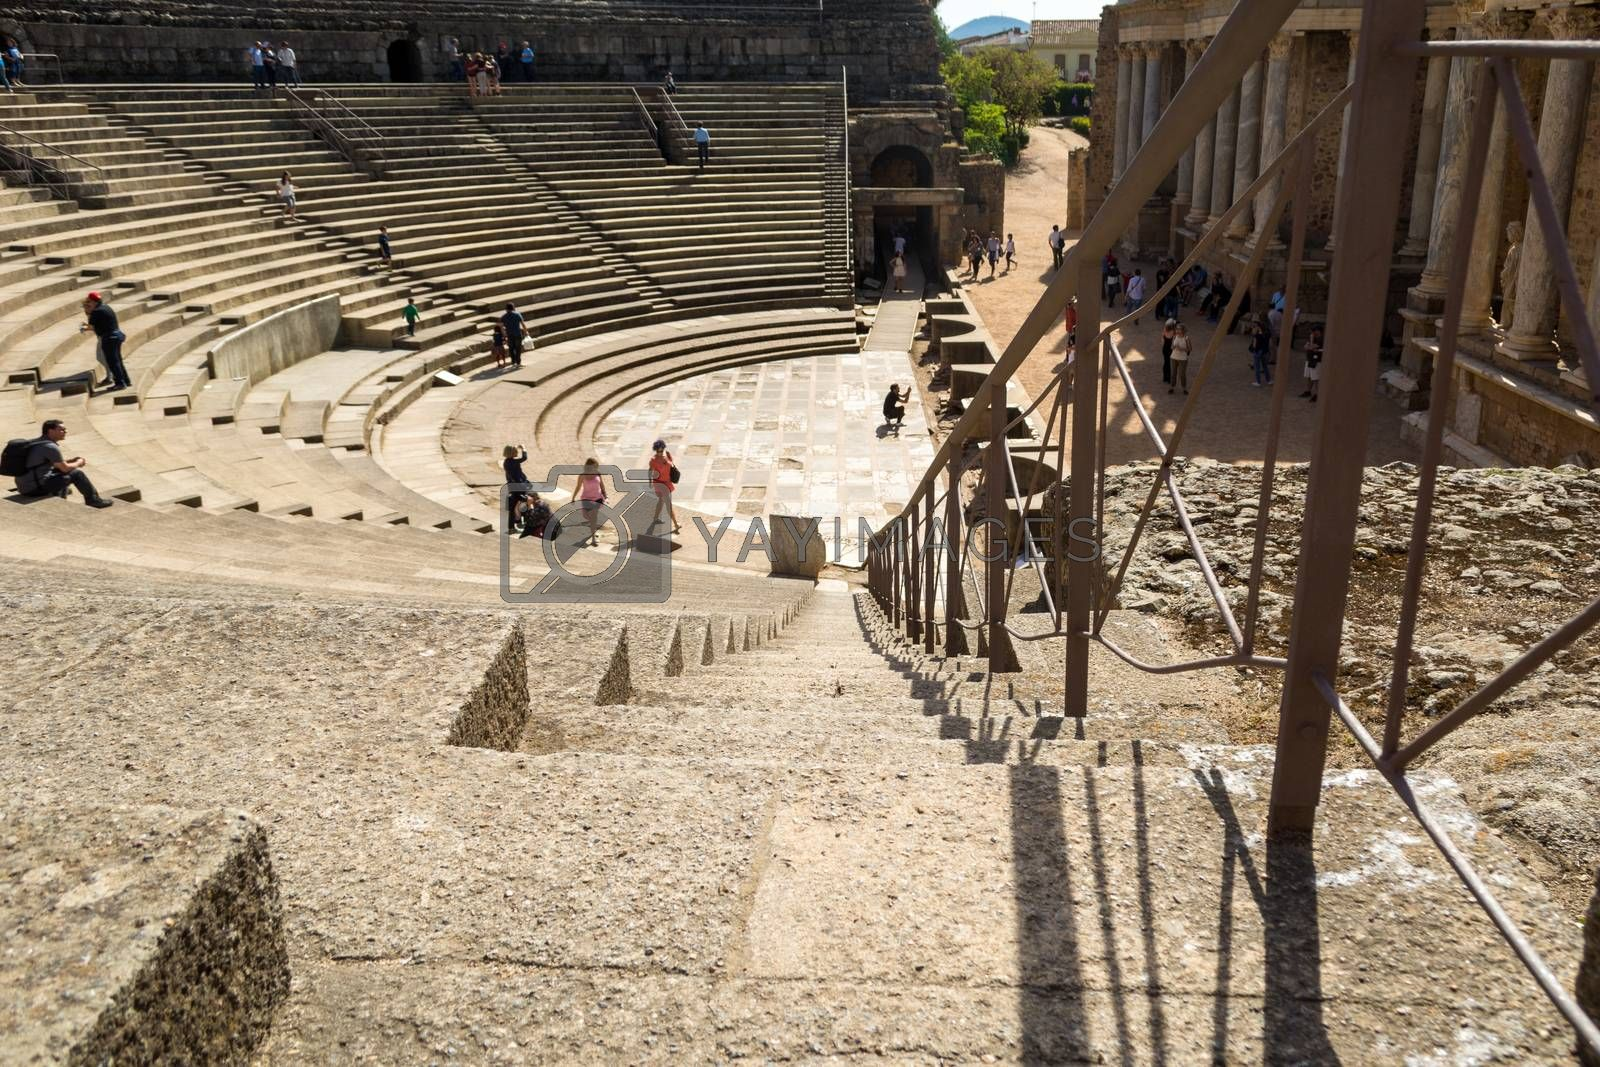 Merida, Spain, April 2017, tourists visiting the Roman ruins theatre arena & waiting rooms used for gladiator & animal fights. Travel and tourism.